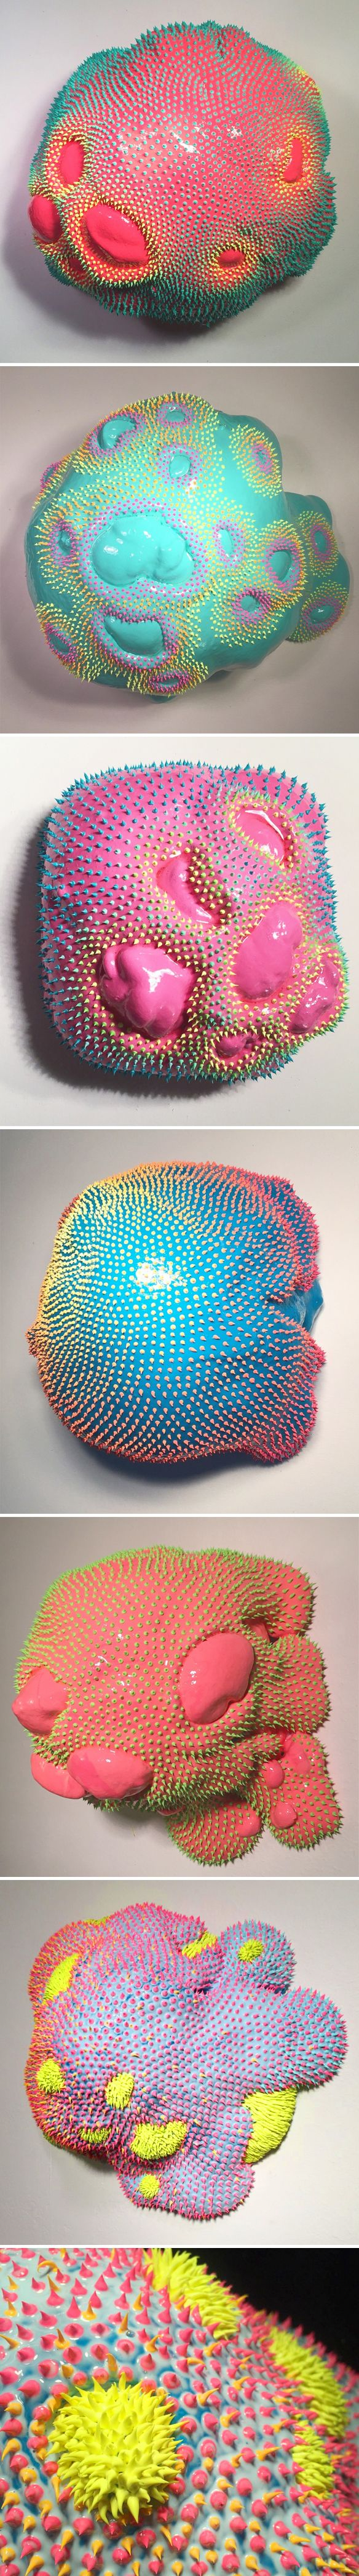 dan lam | The Jealous Curator | Bloglovin' << I kinda like these. The more I look at them, the more I want to touch them.